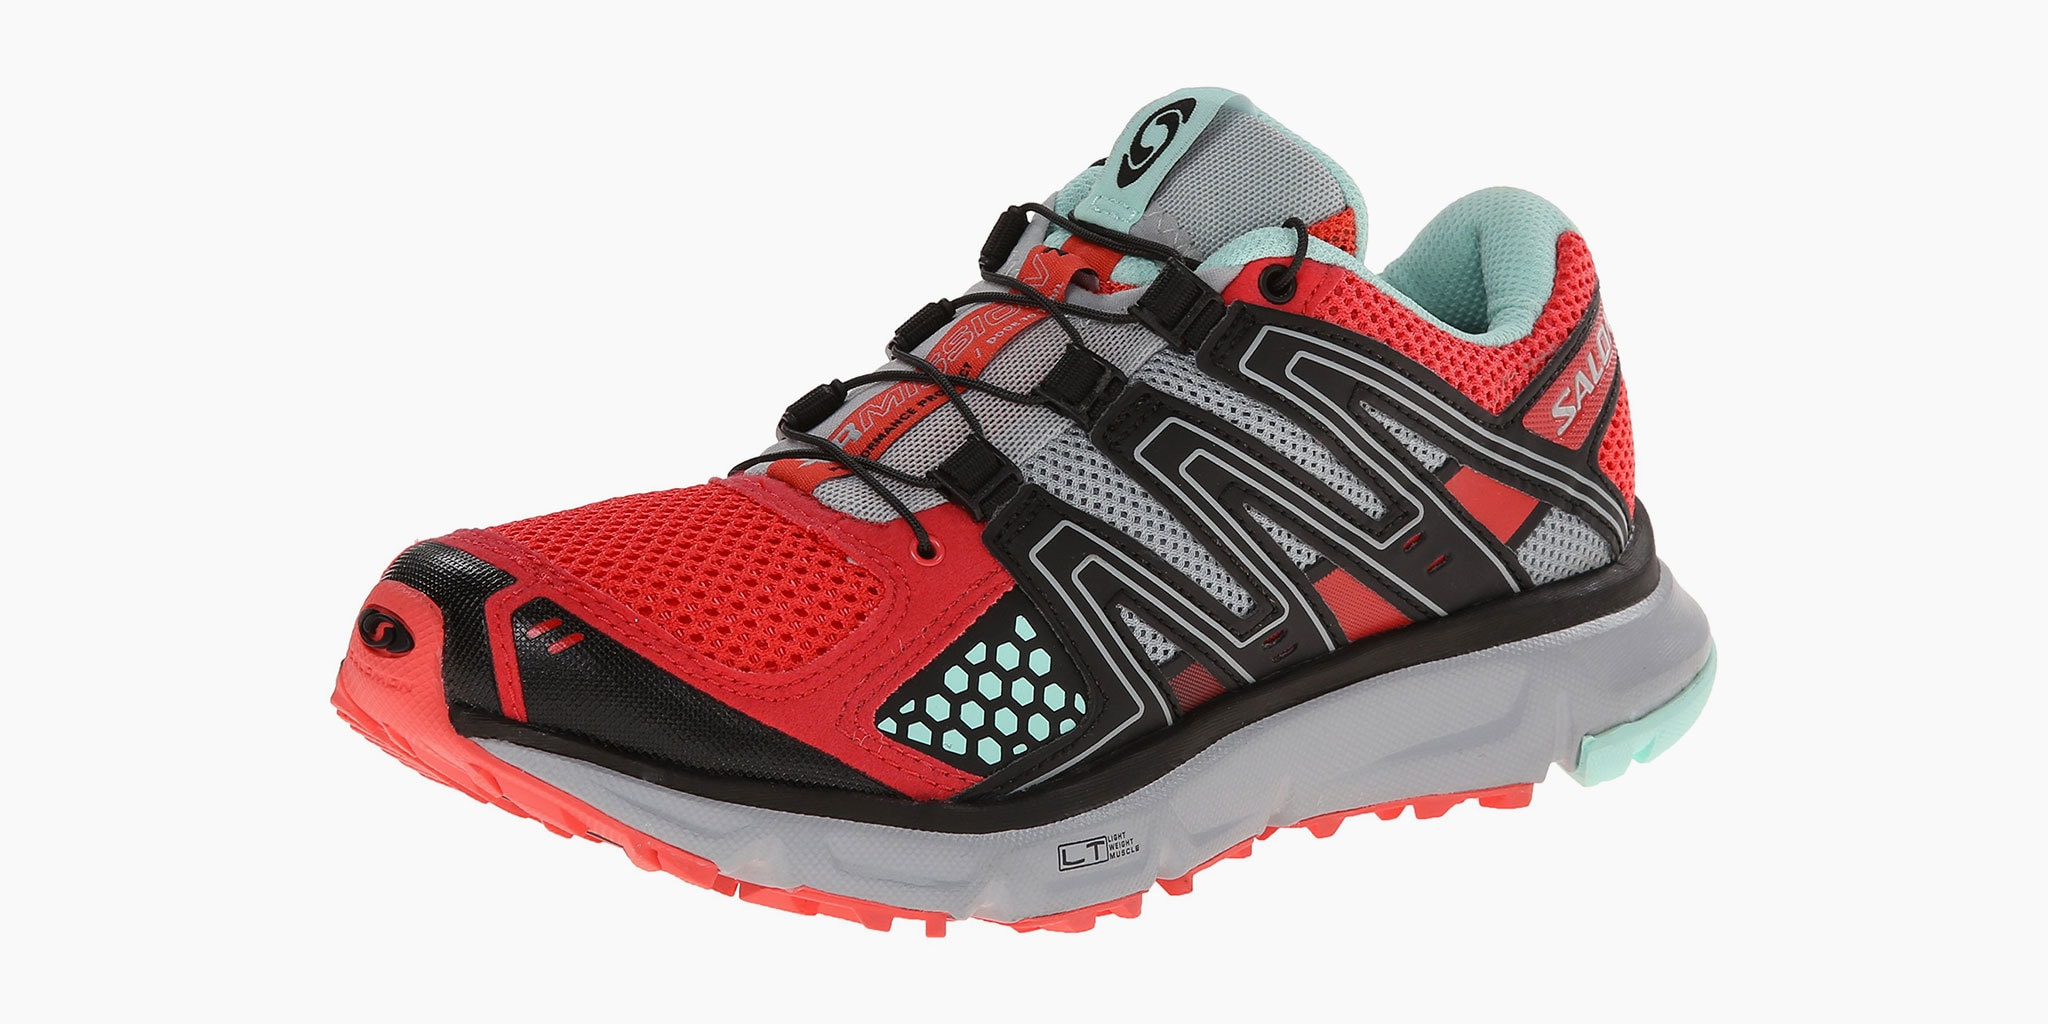 The Best Trail Running Shoes for Flat Feet: 2020 Buyer's Guide